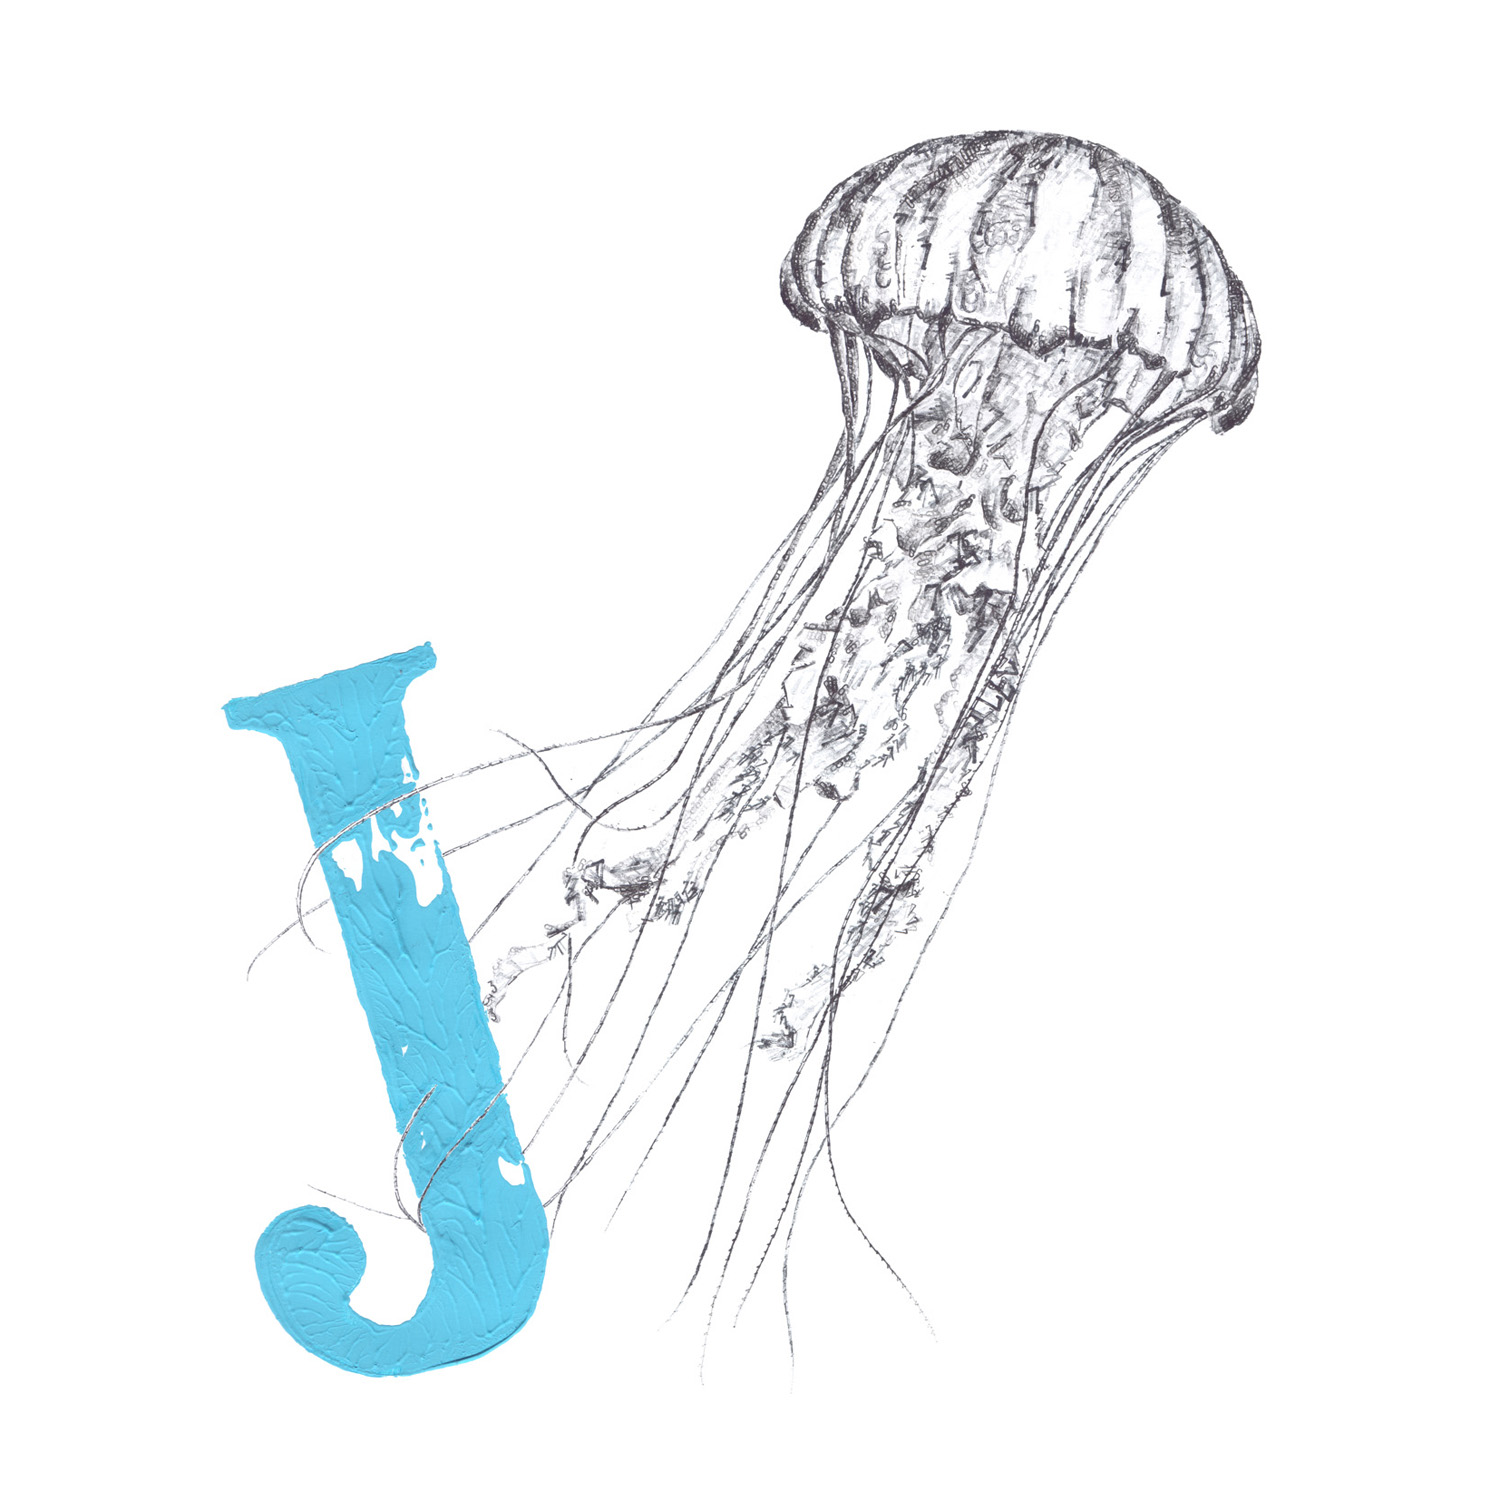 jellyfish-edited-small